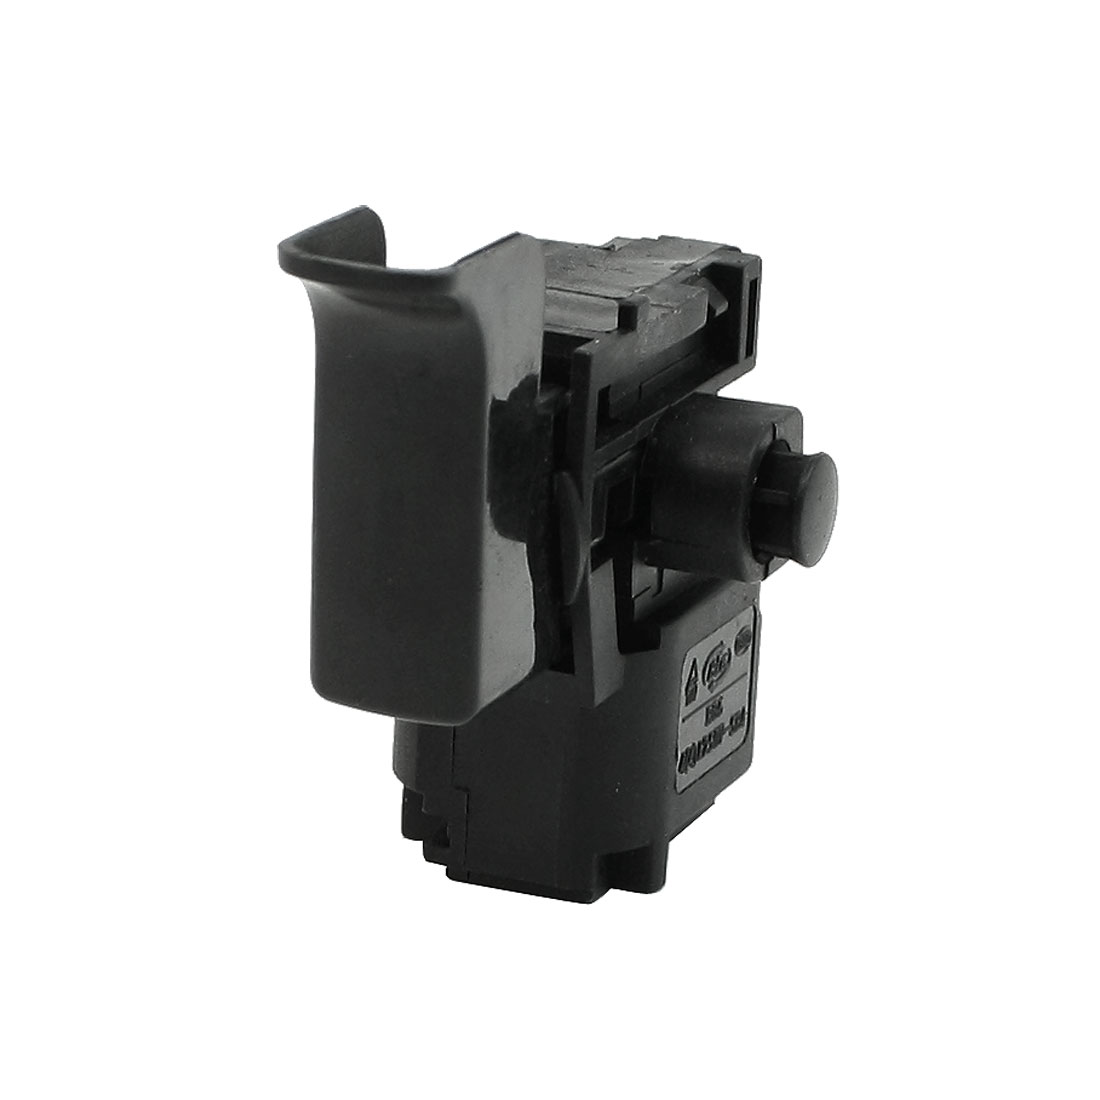 AC 250V 4A Speed Control Manual Lock on Electric Tool Trigger Switch